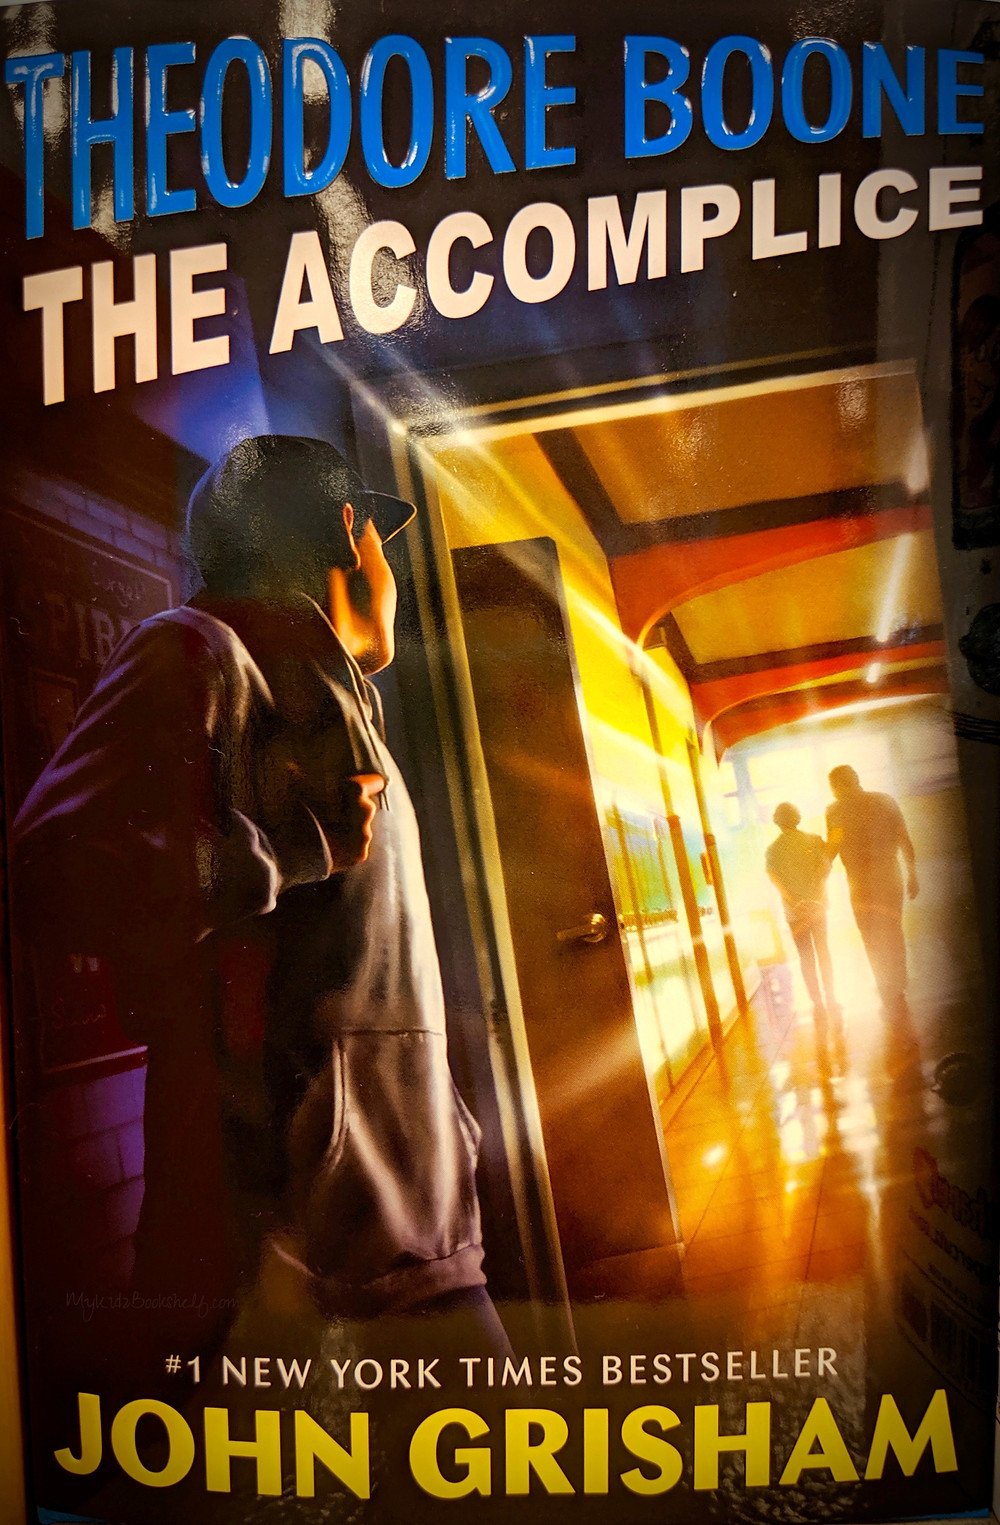 Theodore Boone - The Accomplice  by John Grisham